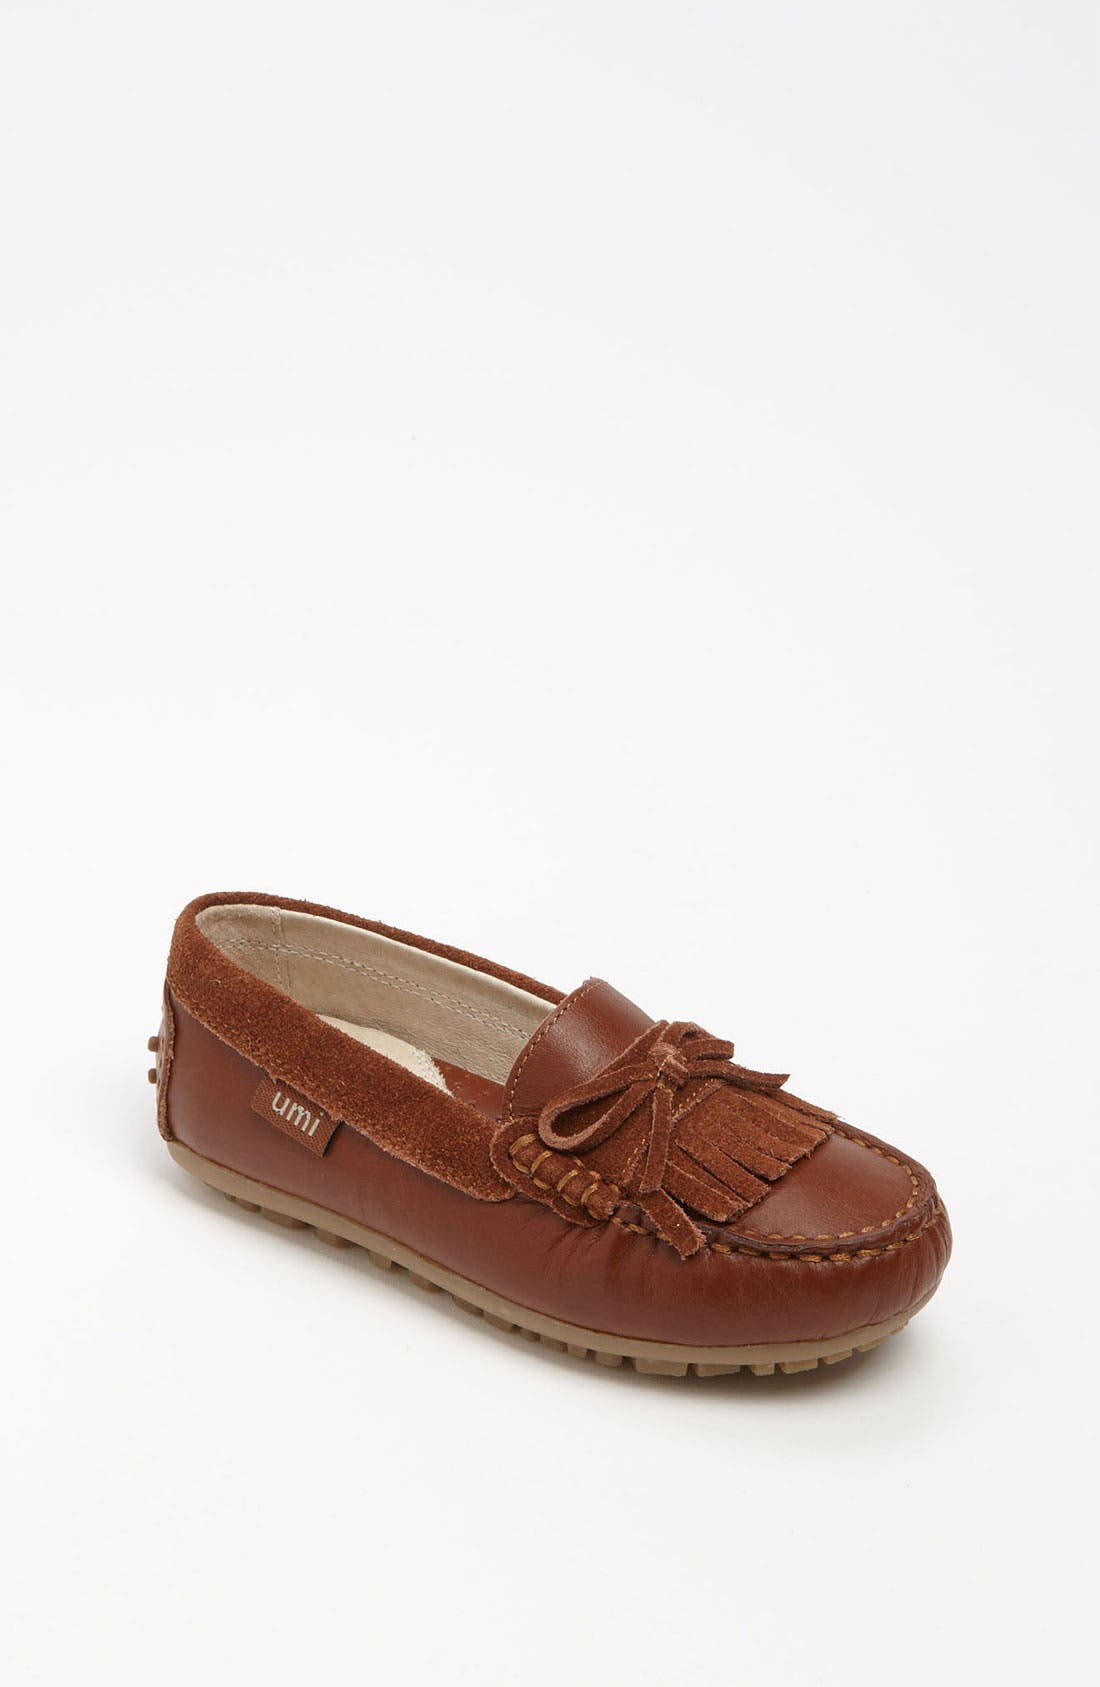 Alternate Image 1 Selected - Umi 'Monet' Moccasin (Toddler, Little Kid & Big Kid)